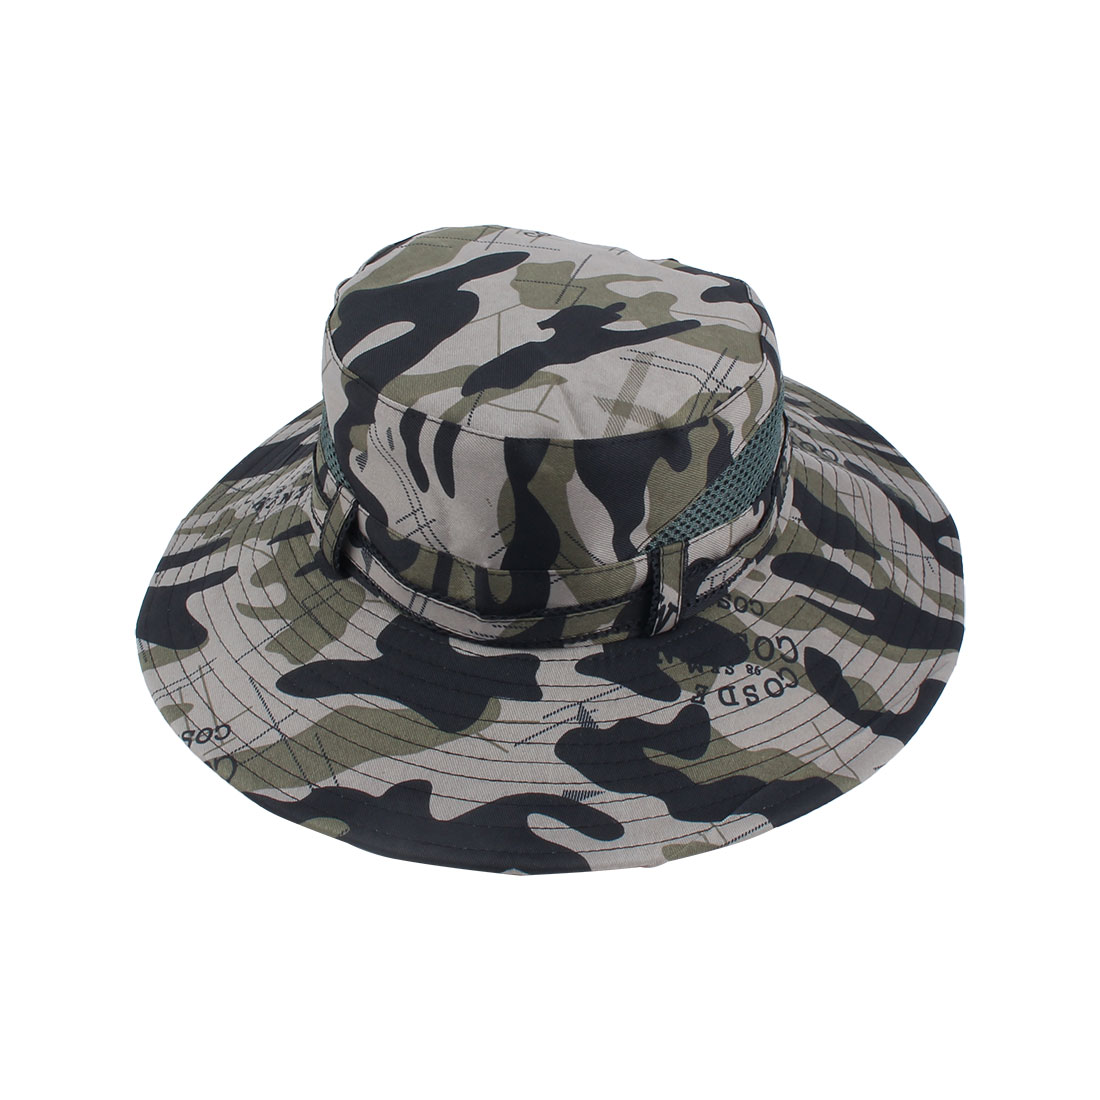 Fisherman Outdoor Sports Mountaineering Hunting Adjustable Strap Bucket Summer Cap Fishing Hat Camouflage